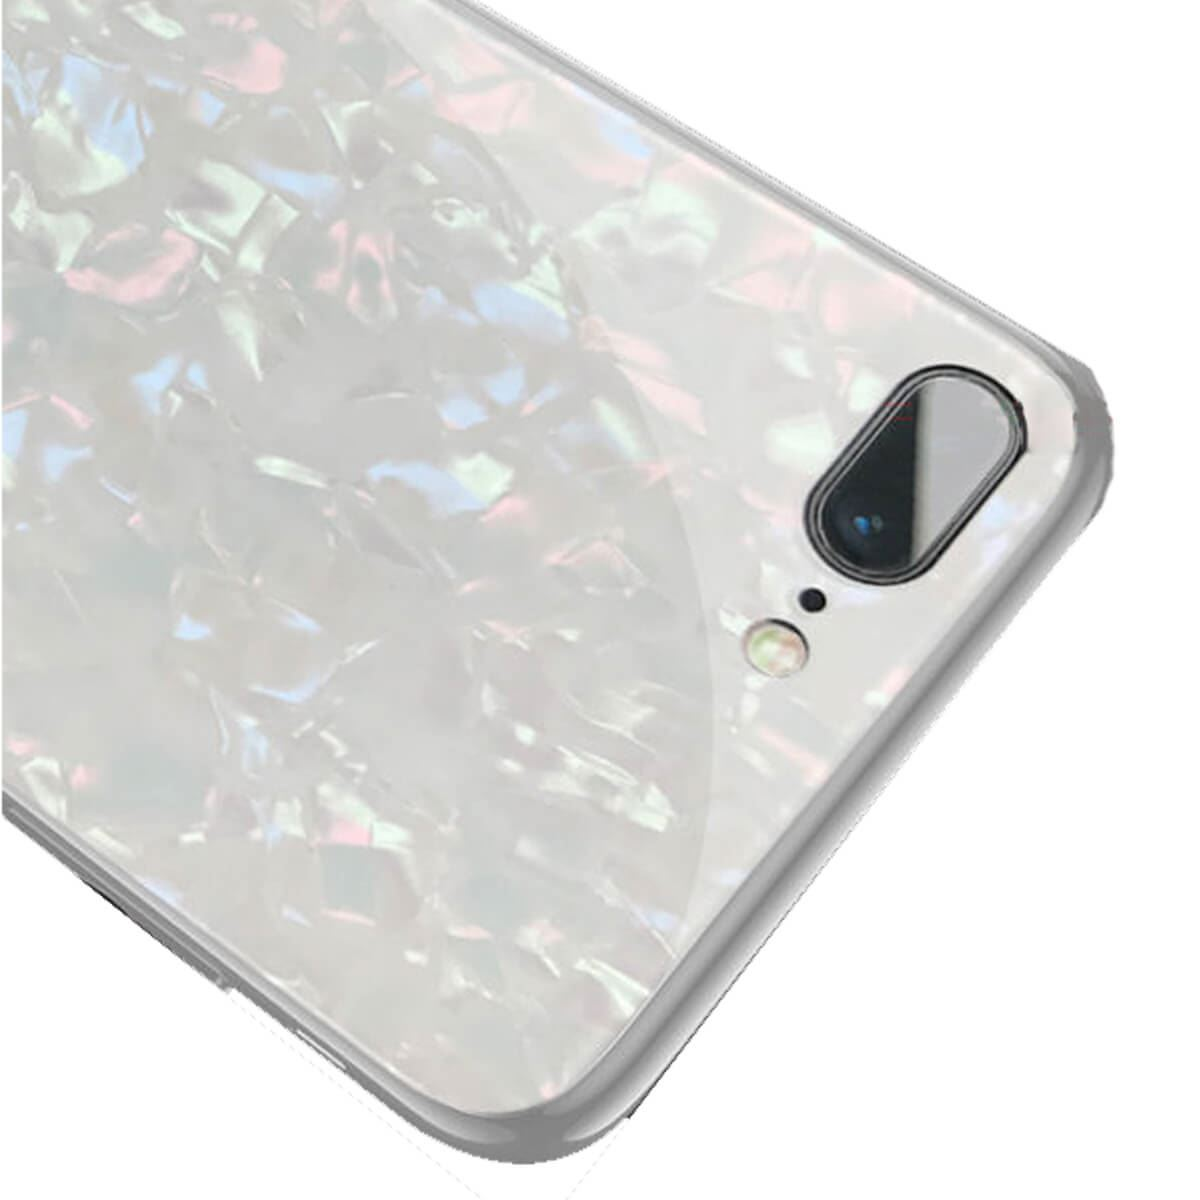 Marble-Tempered-Glass-Case-For-Apple-iPhone-X-XS-XR-Max-10-8-7-6s-6-Luxury-Cover thumbnail 29